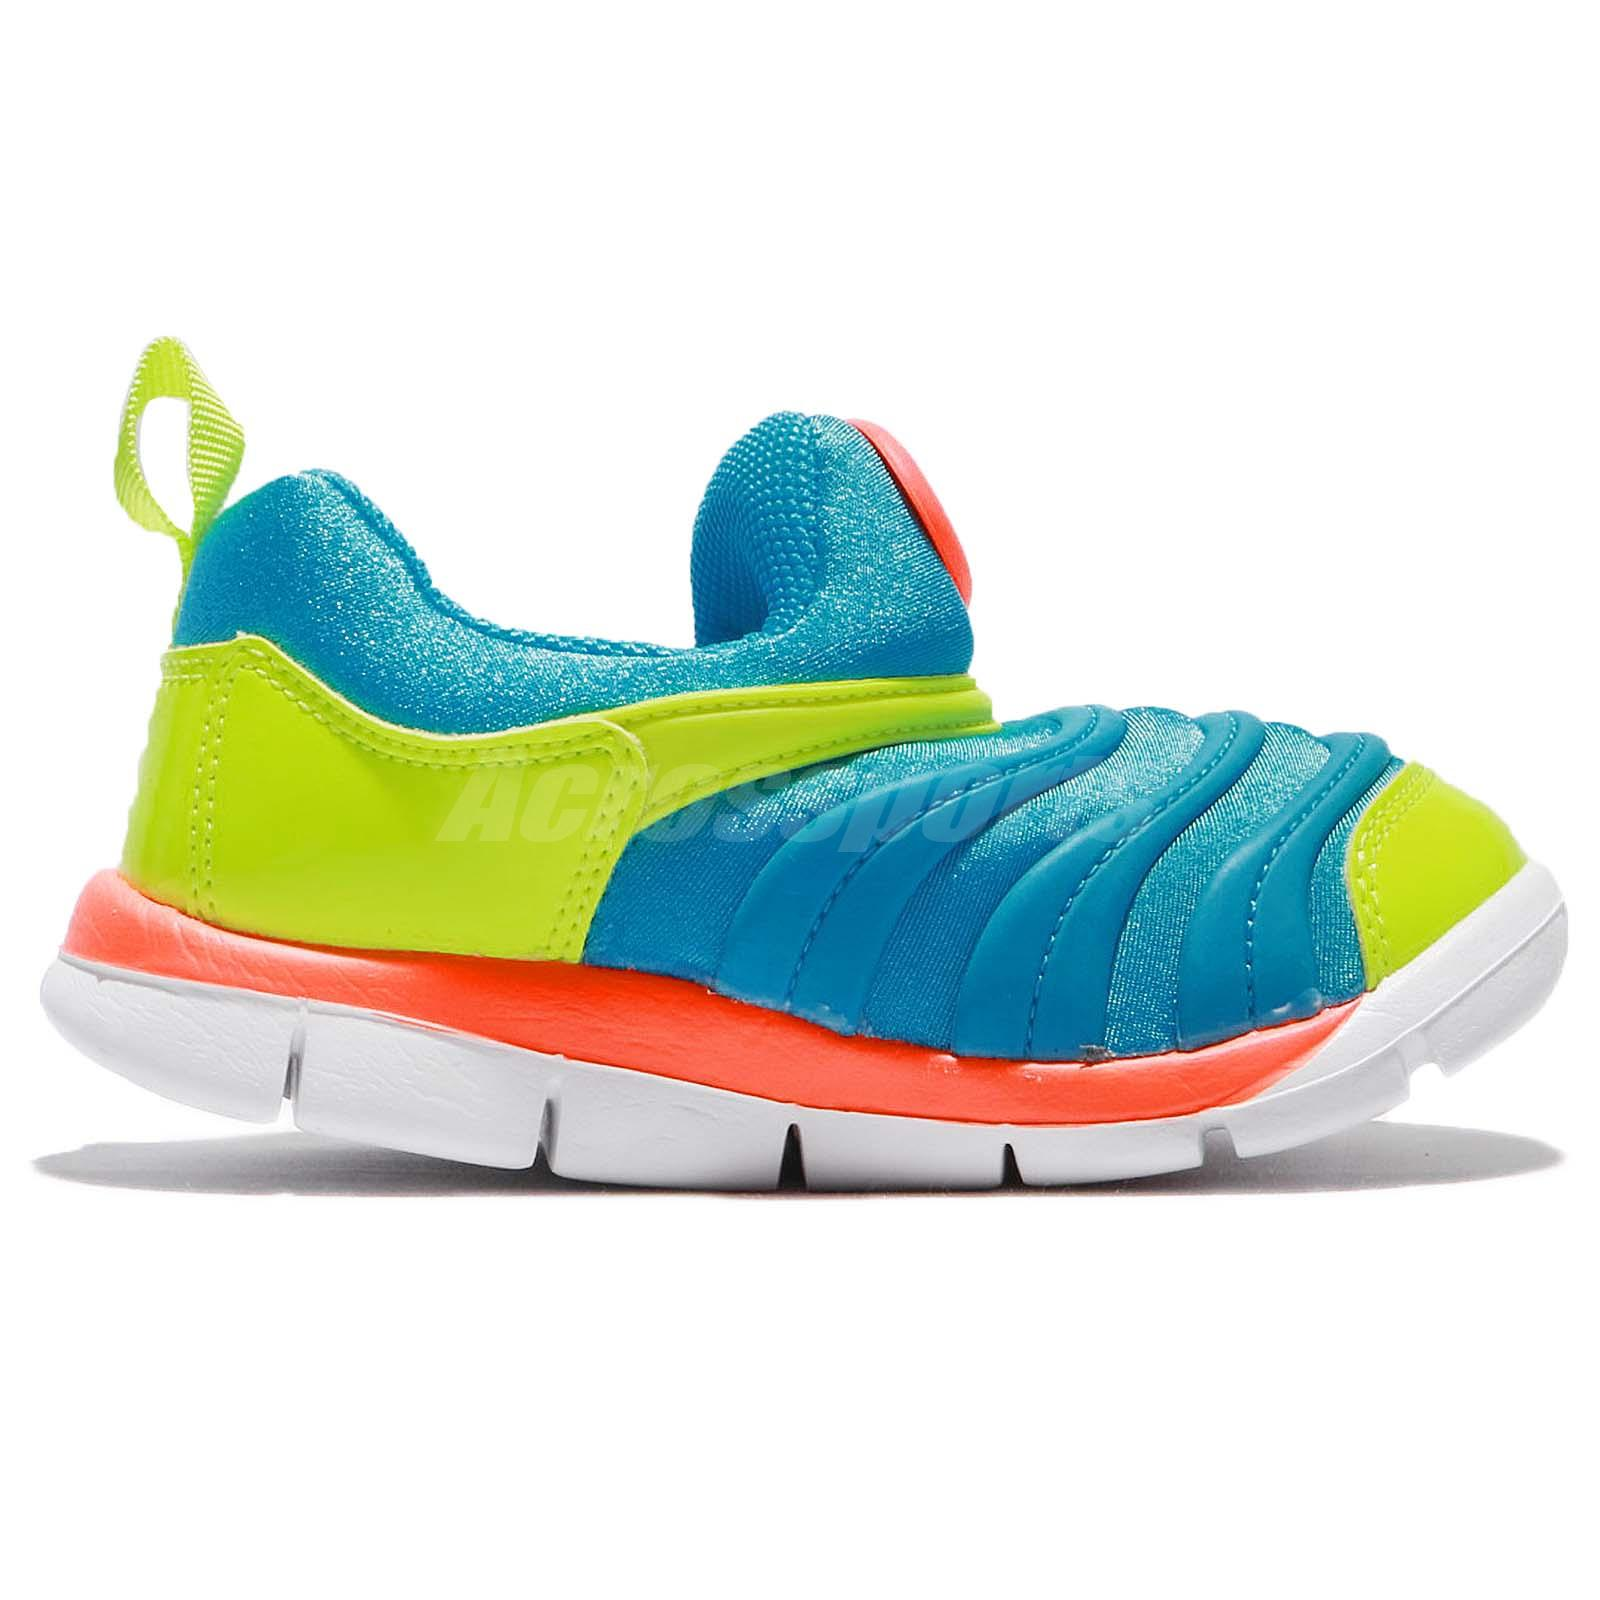 Nike Dynamo Free TD LT Blue Volt Toddler Infant Baby Shoes Sneakers